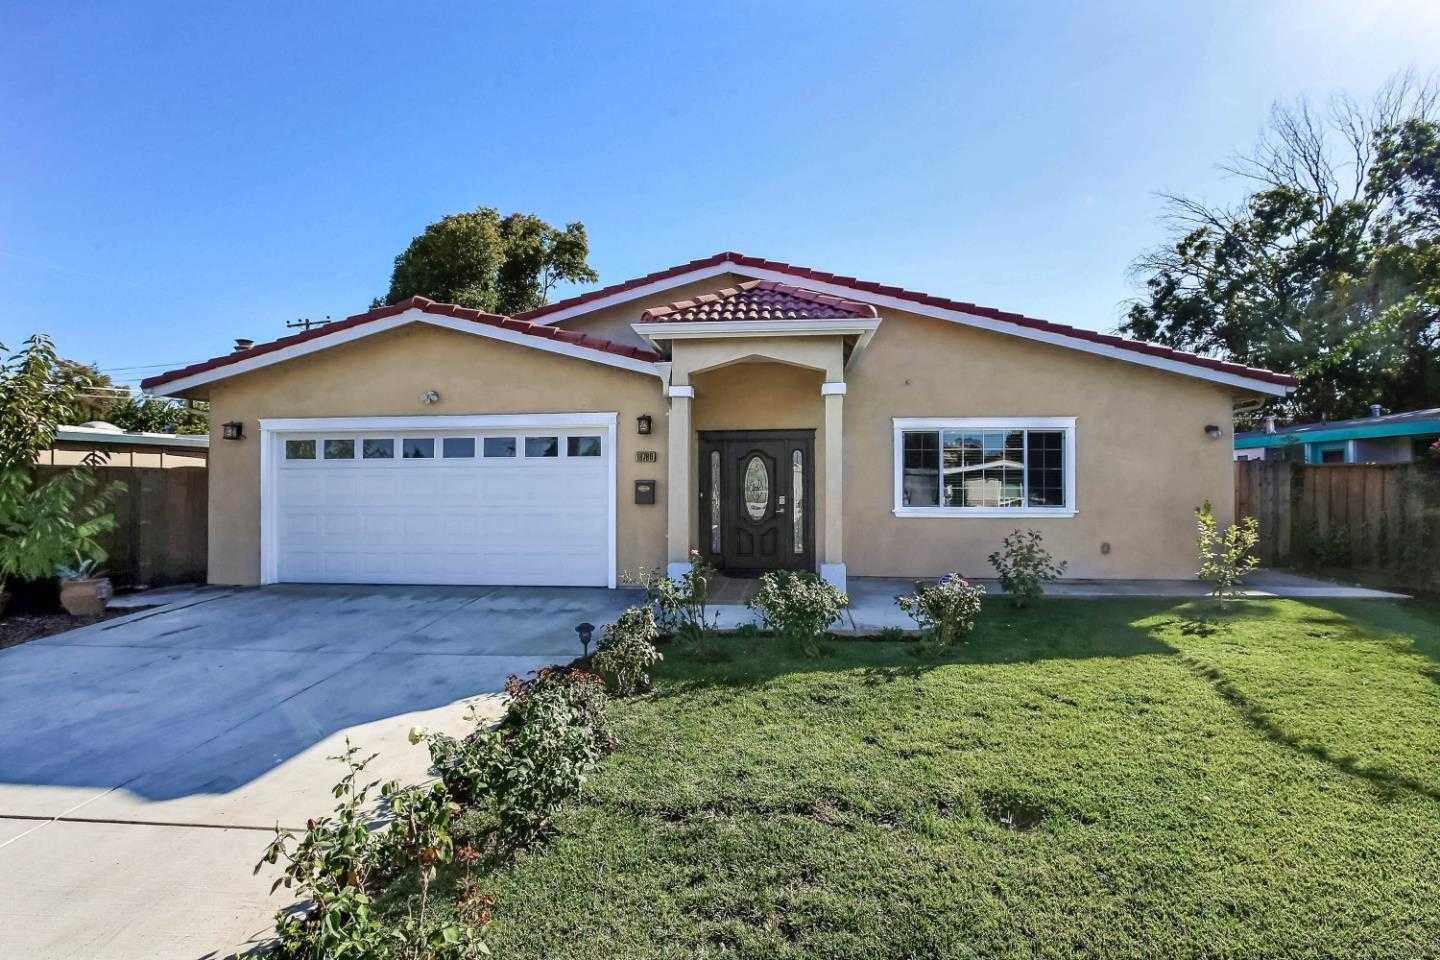 $2,298,000 - 3Br/2Ba -  for Sale in Cupertino